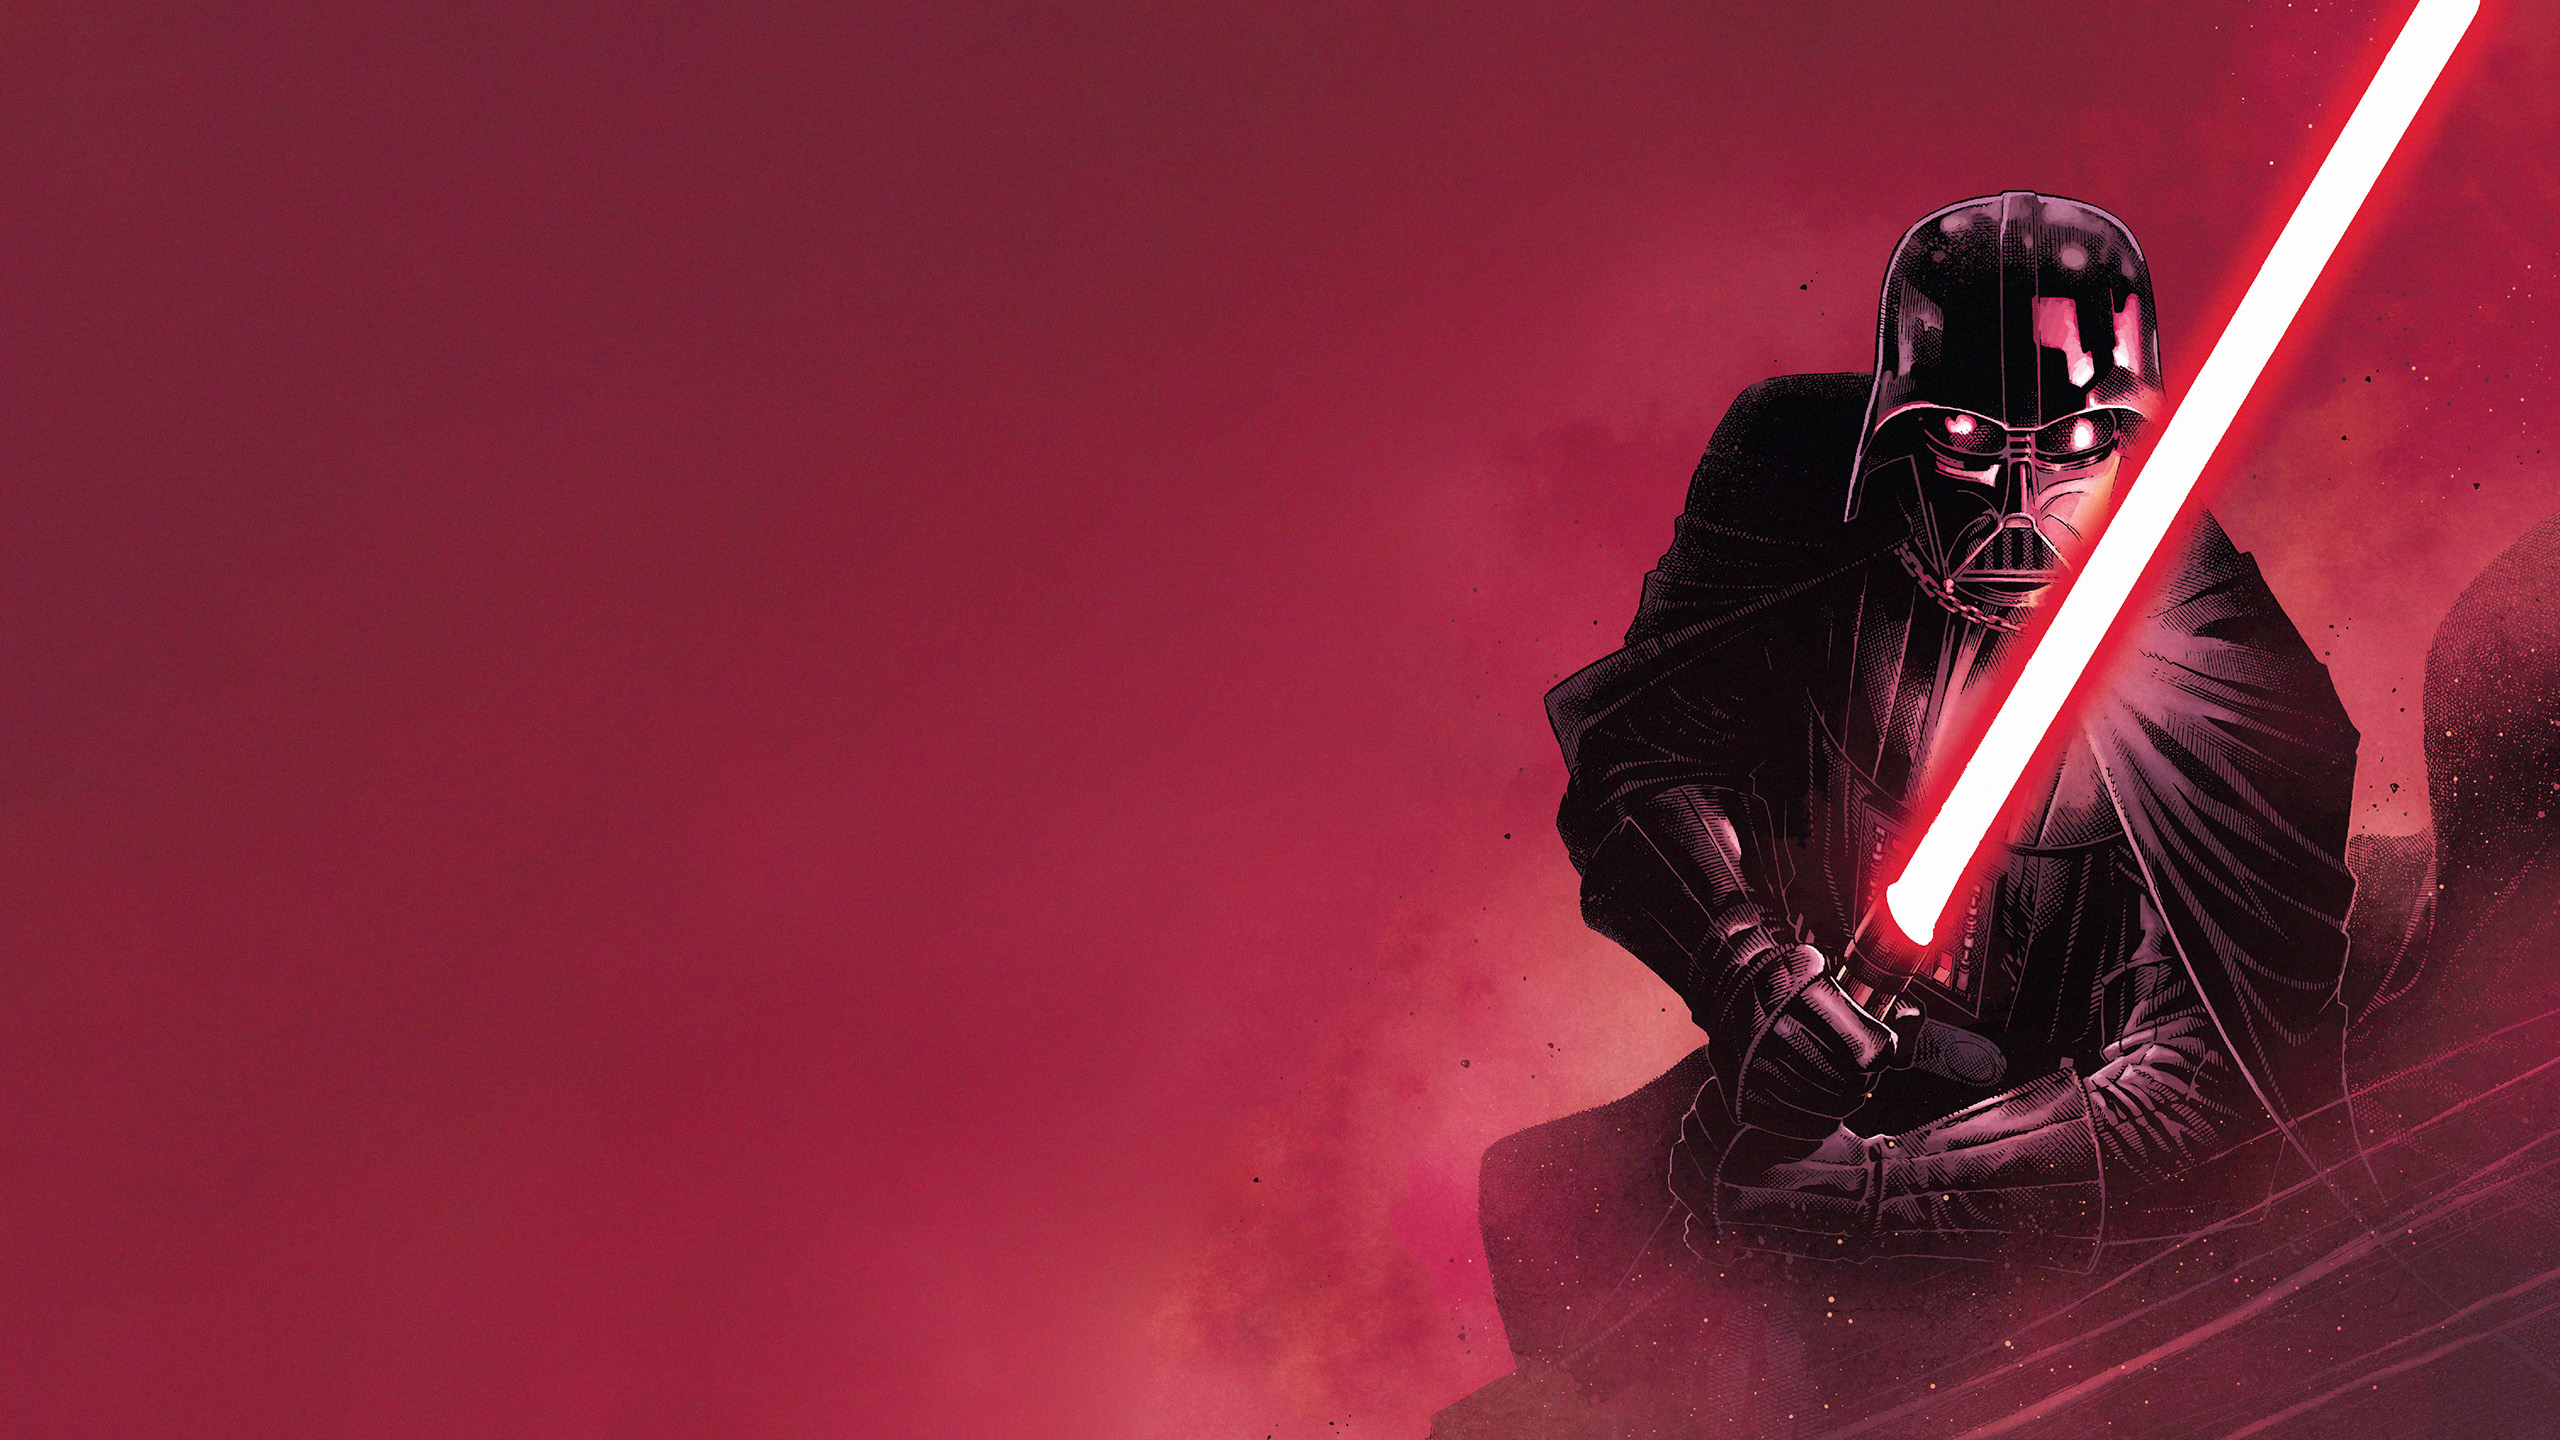 Darth Vader Hd Wallpaper Background Image 2560x1440 Id